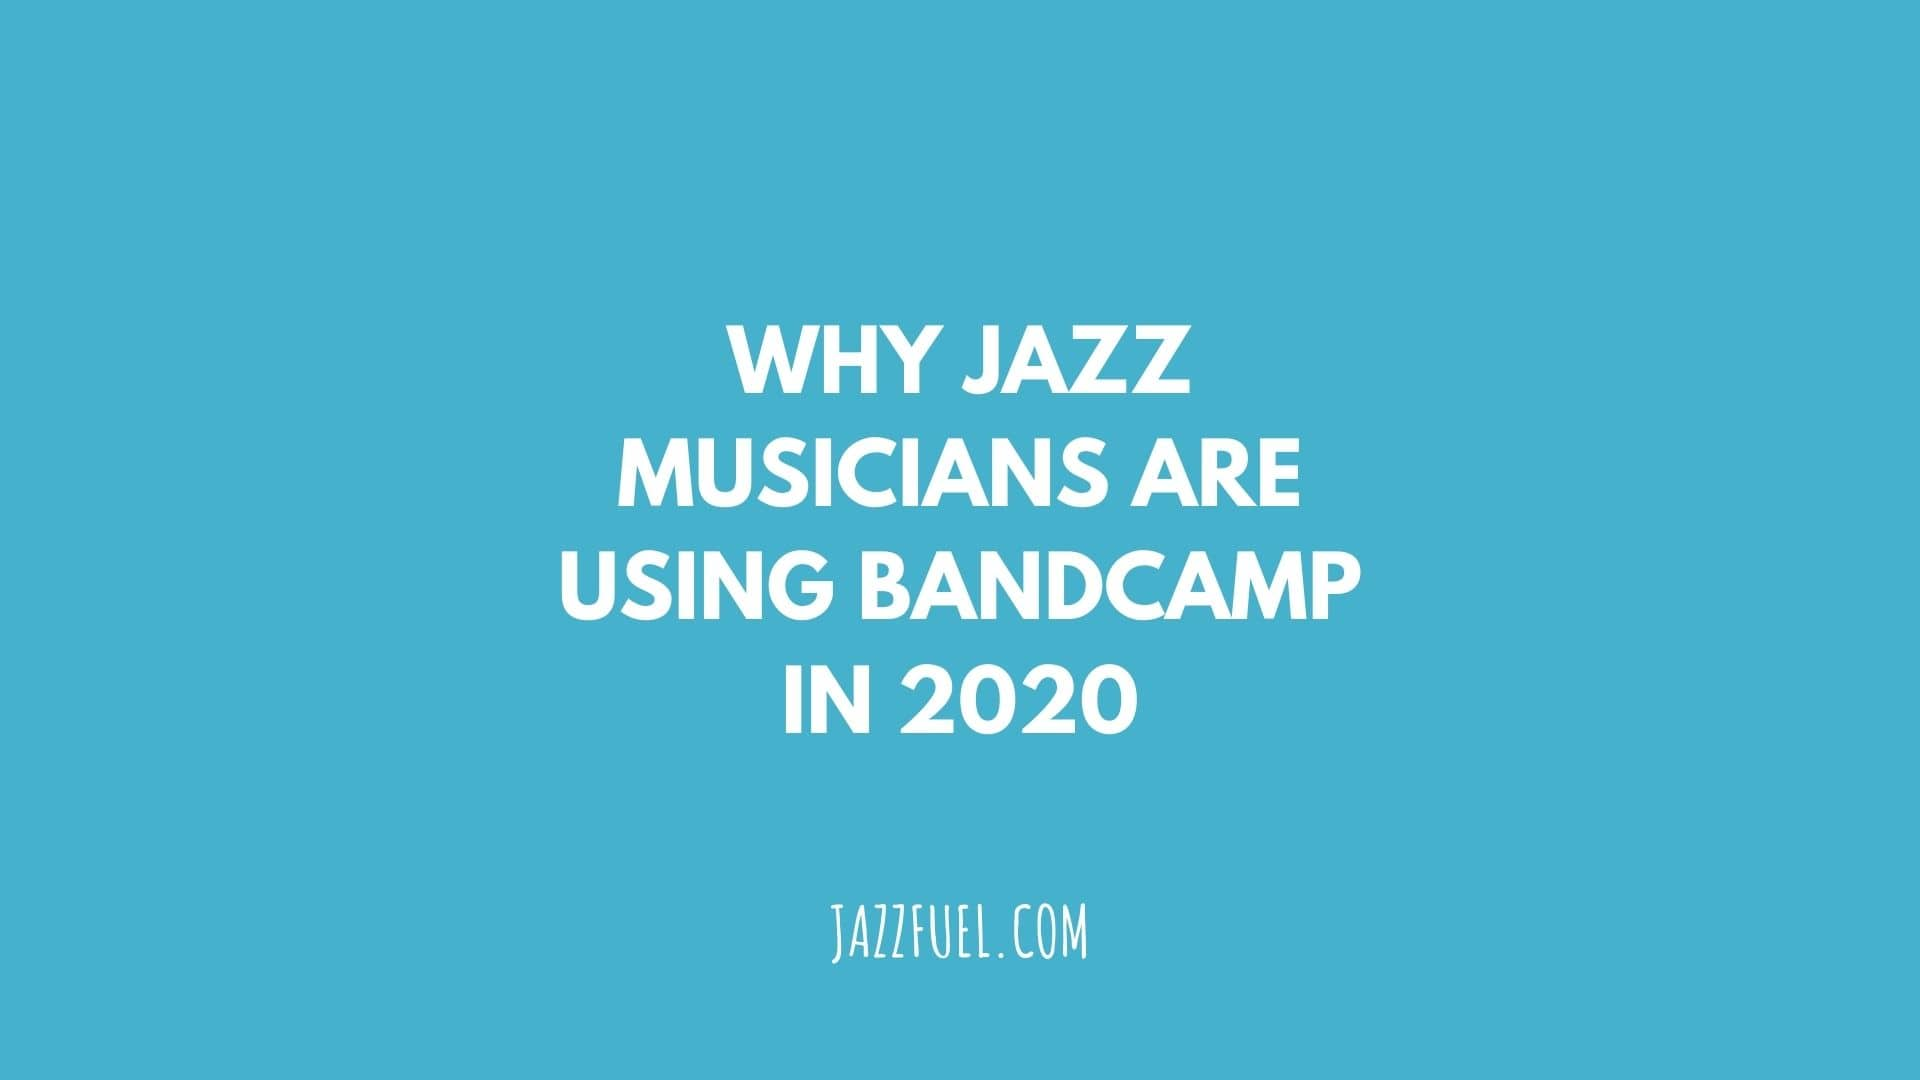 Bandcamp for Jazz Musicians